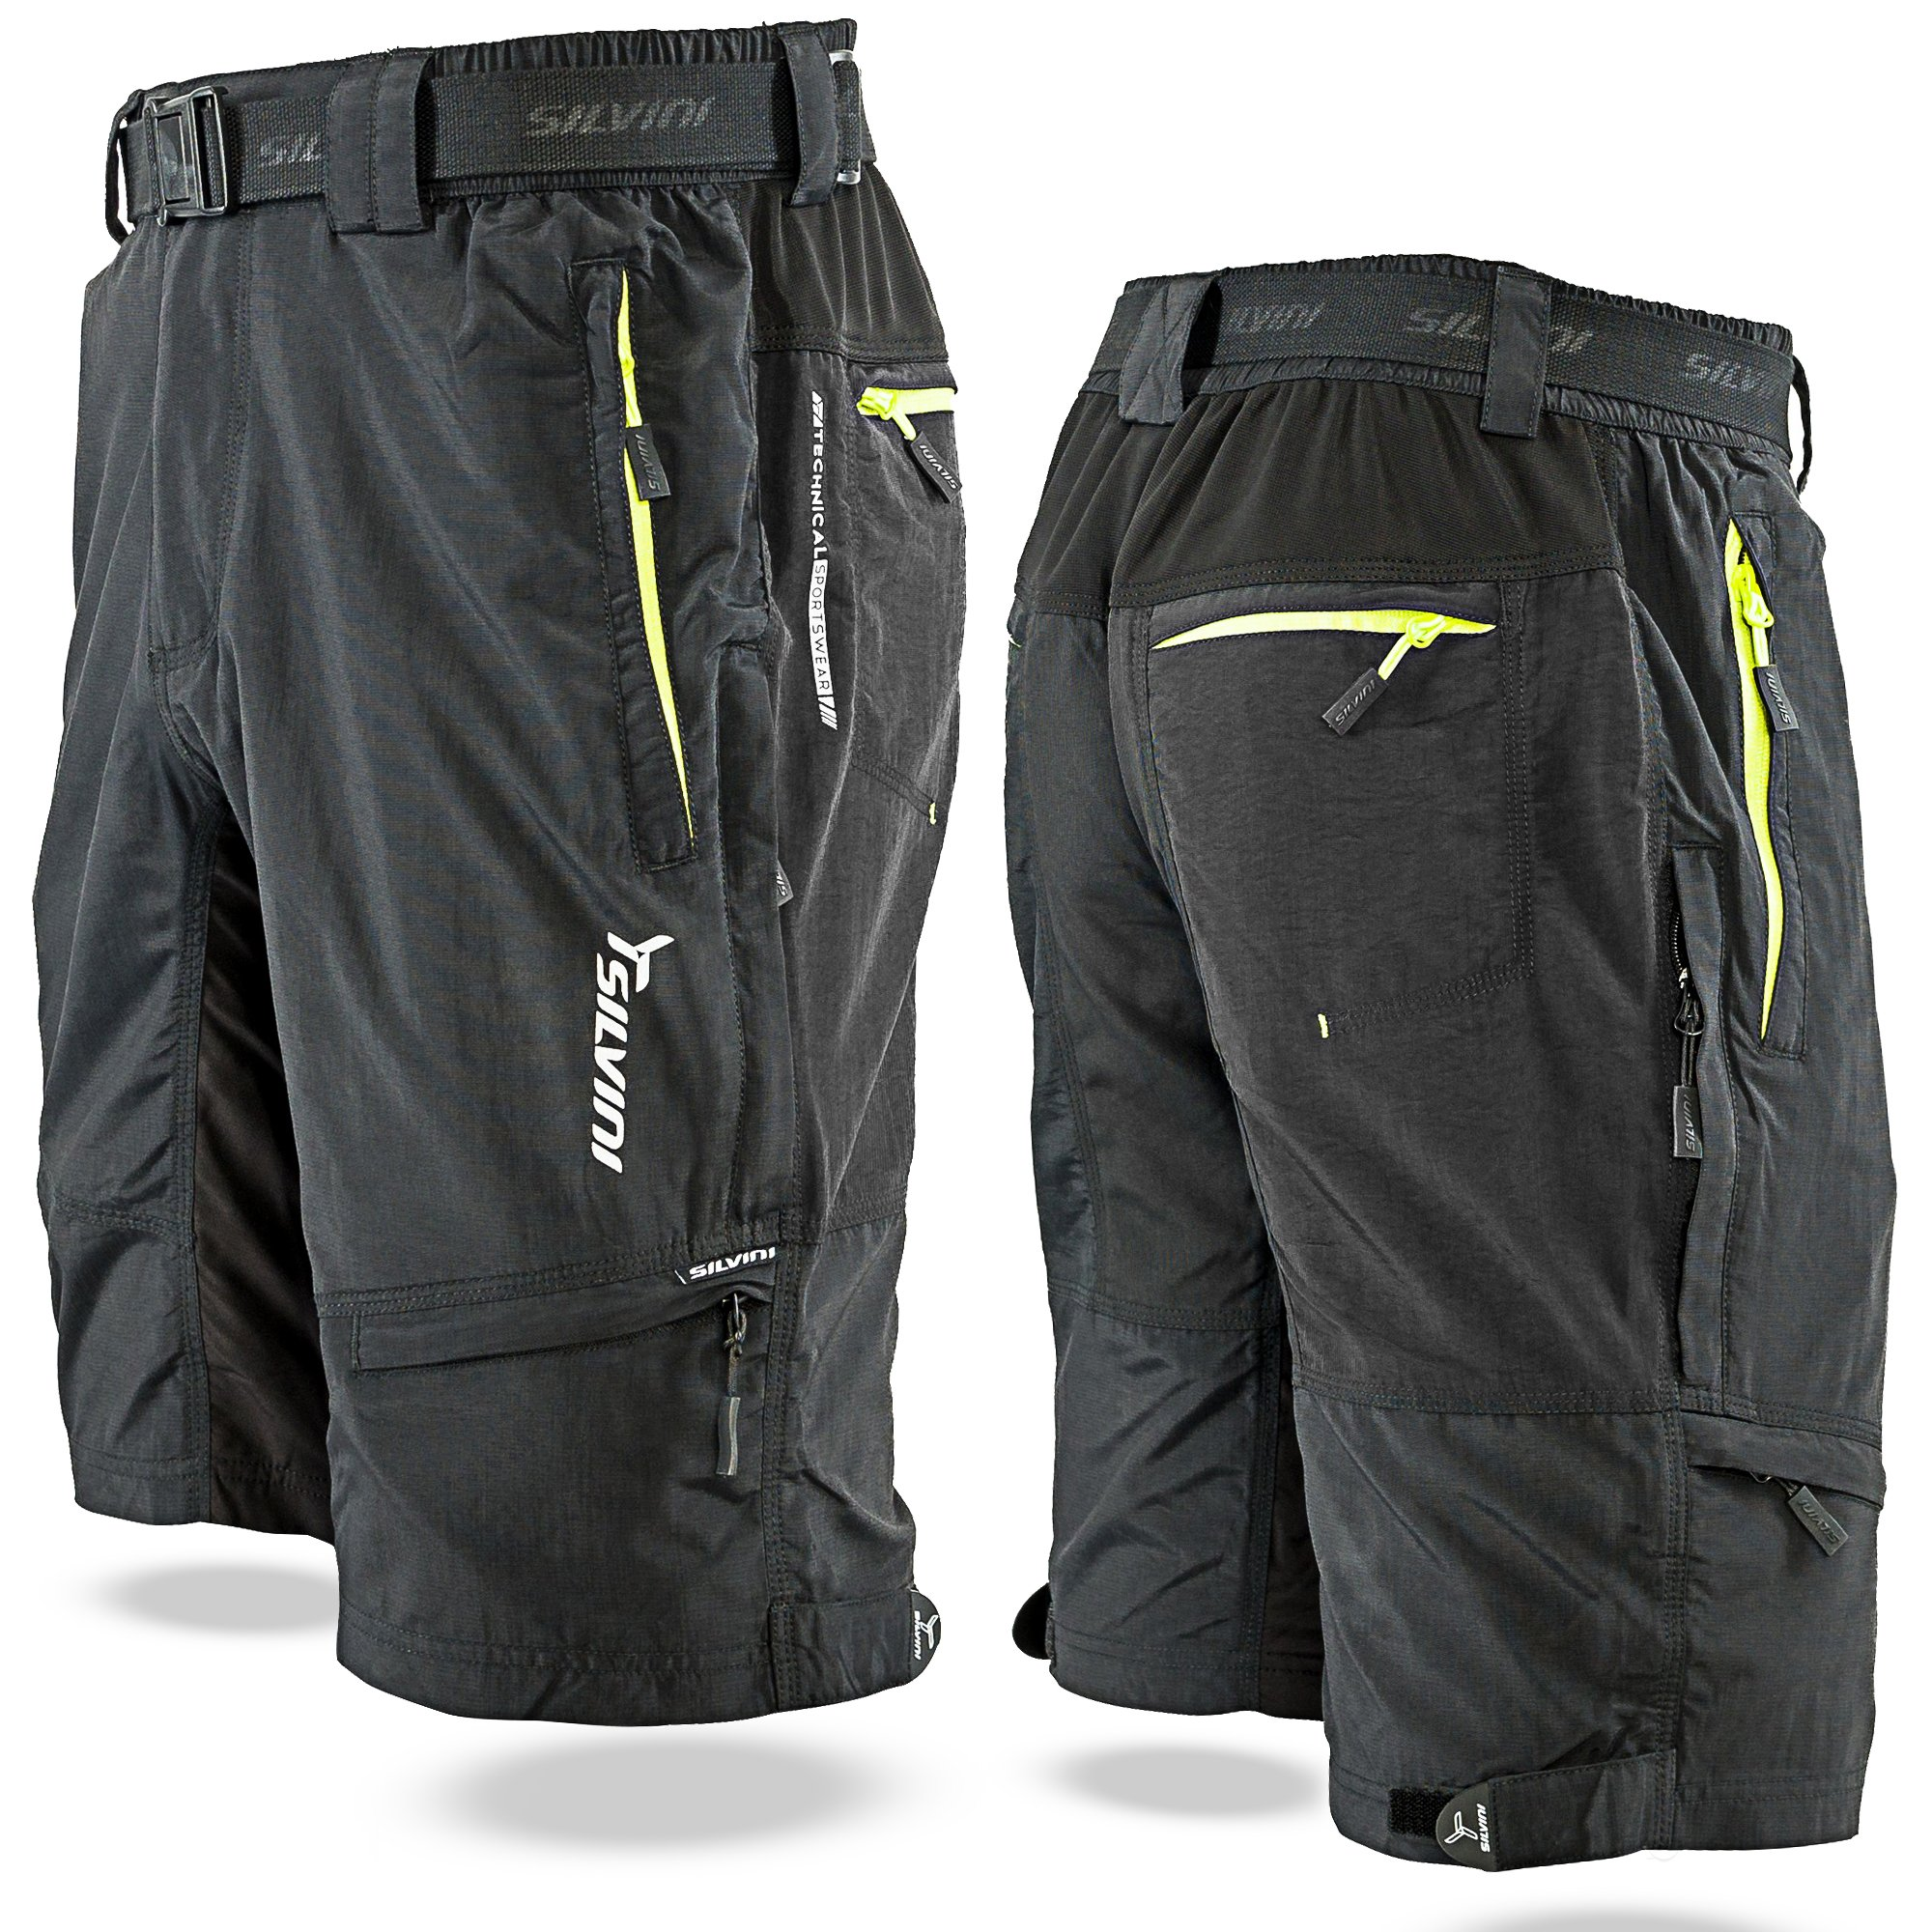 SILVINI-Rango-Mountain-Cycling-Shorts